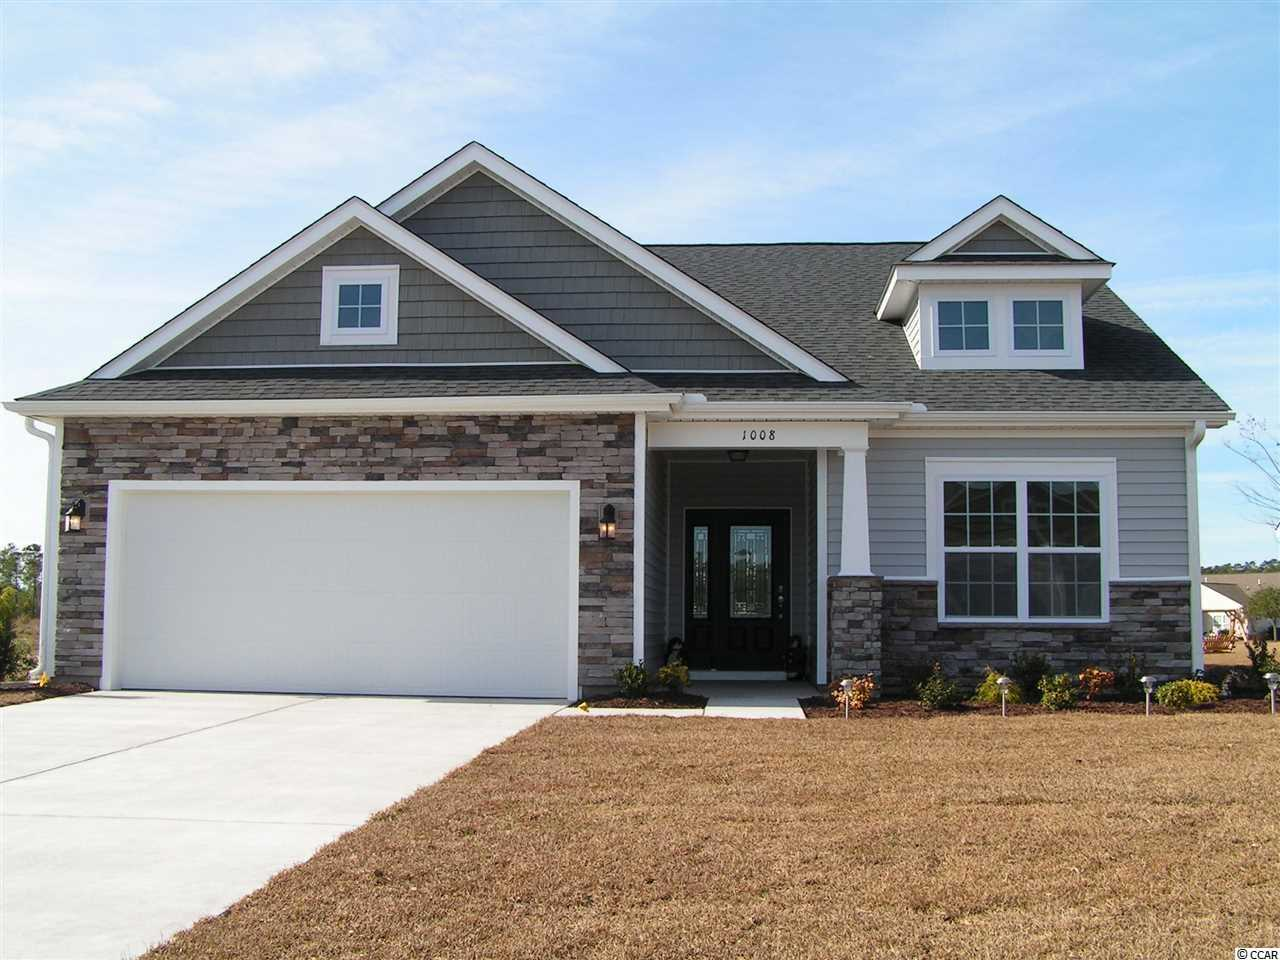 1109 Dalmore Ct. Conway, SC 29526 | MLS 1724130 Photo 1